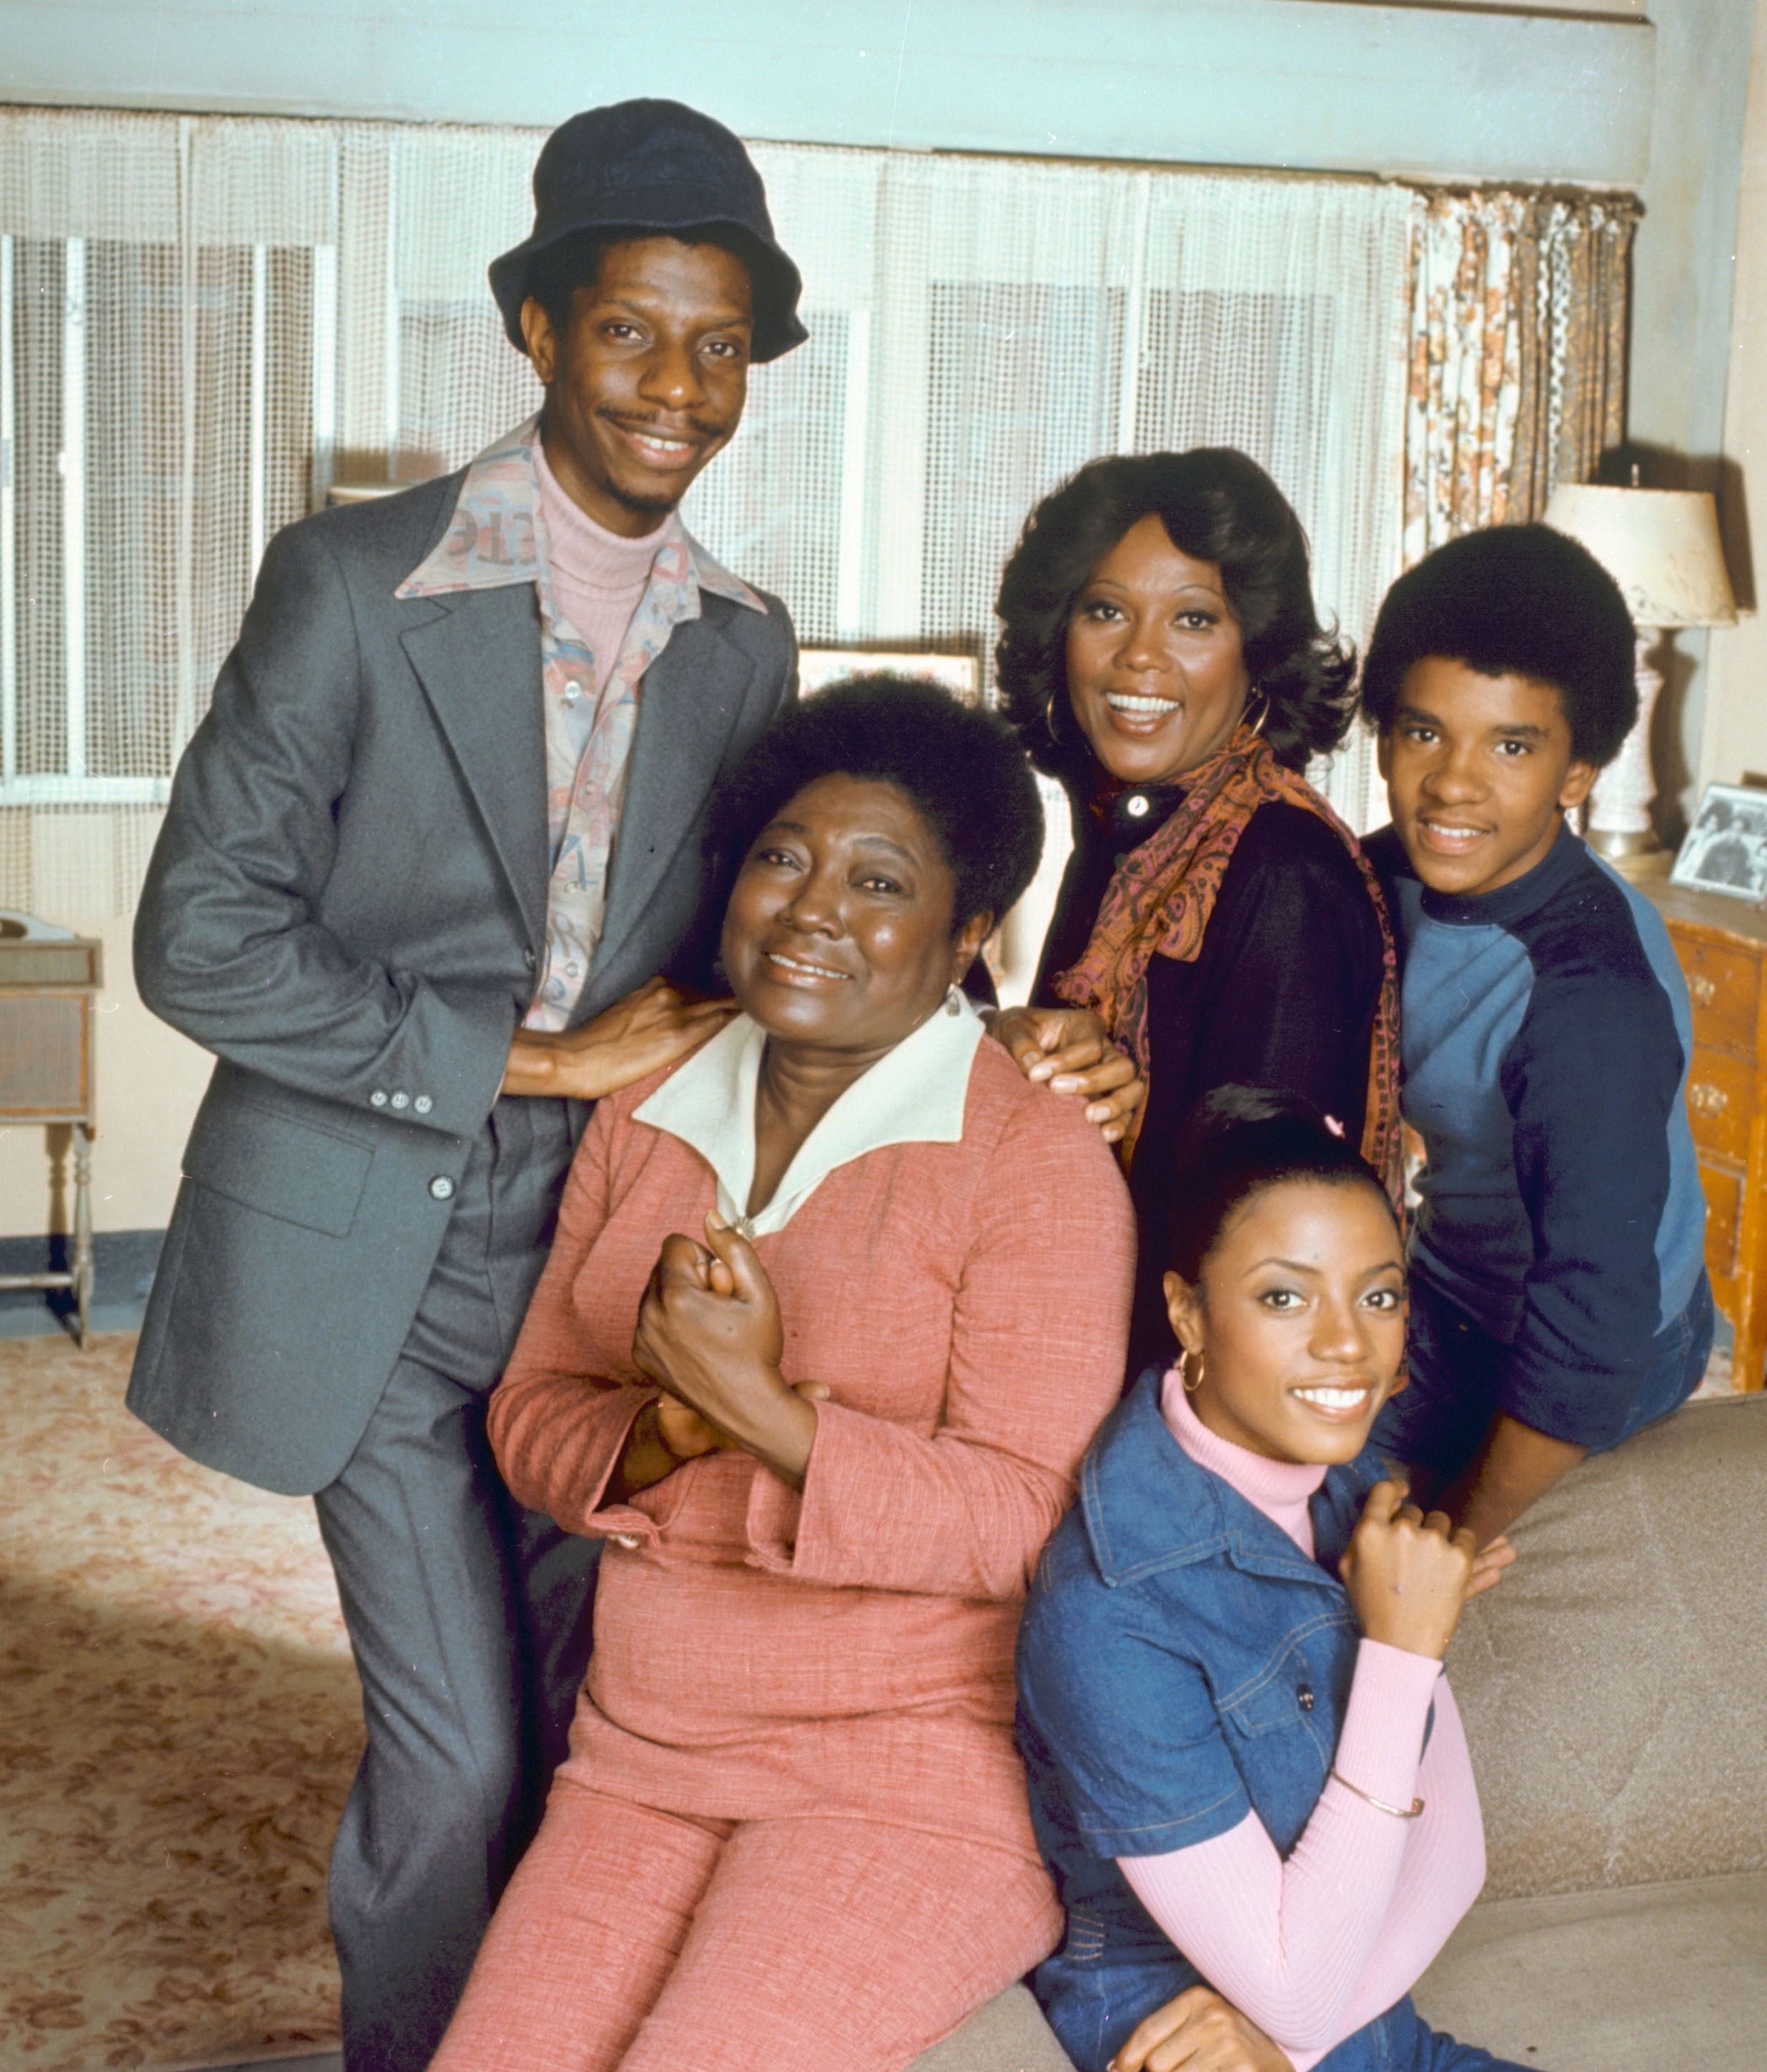 Esther Rolle and the cast of Good Times | Kibbe Classic Fashion Type